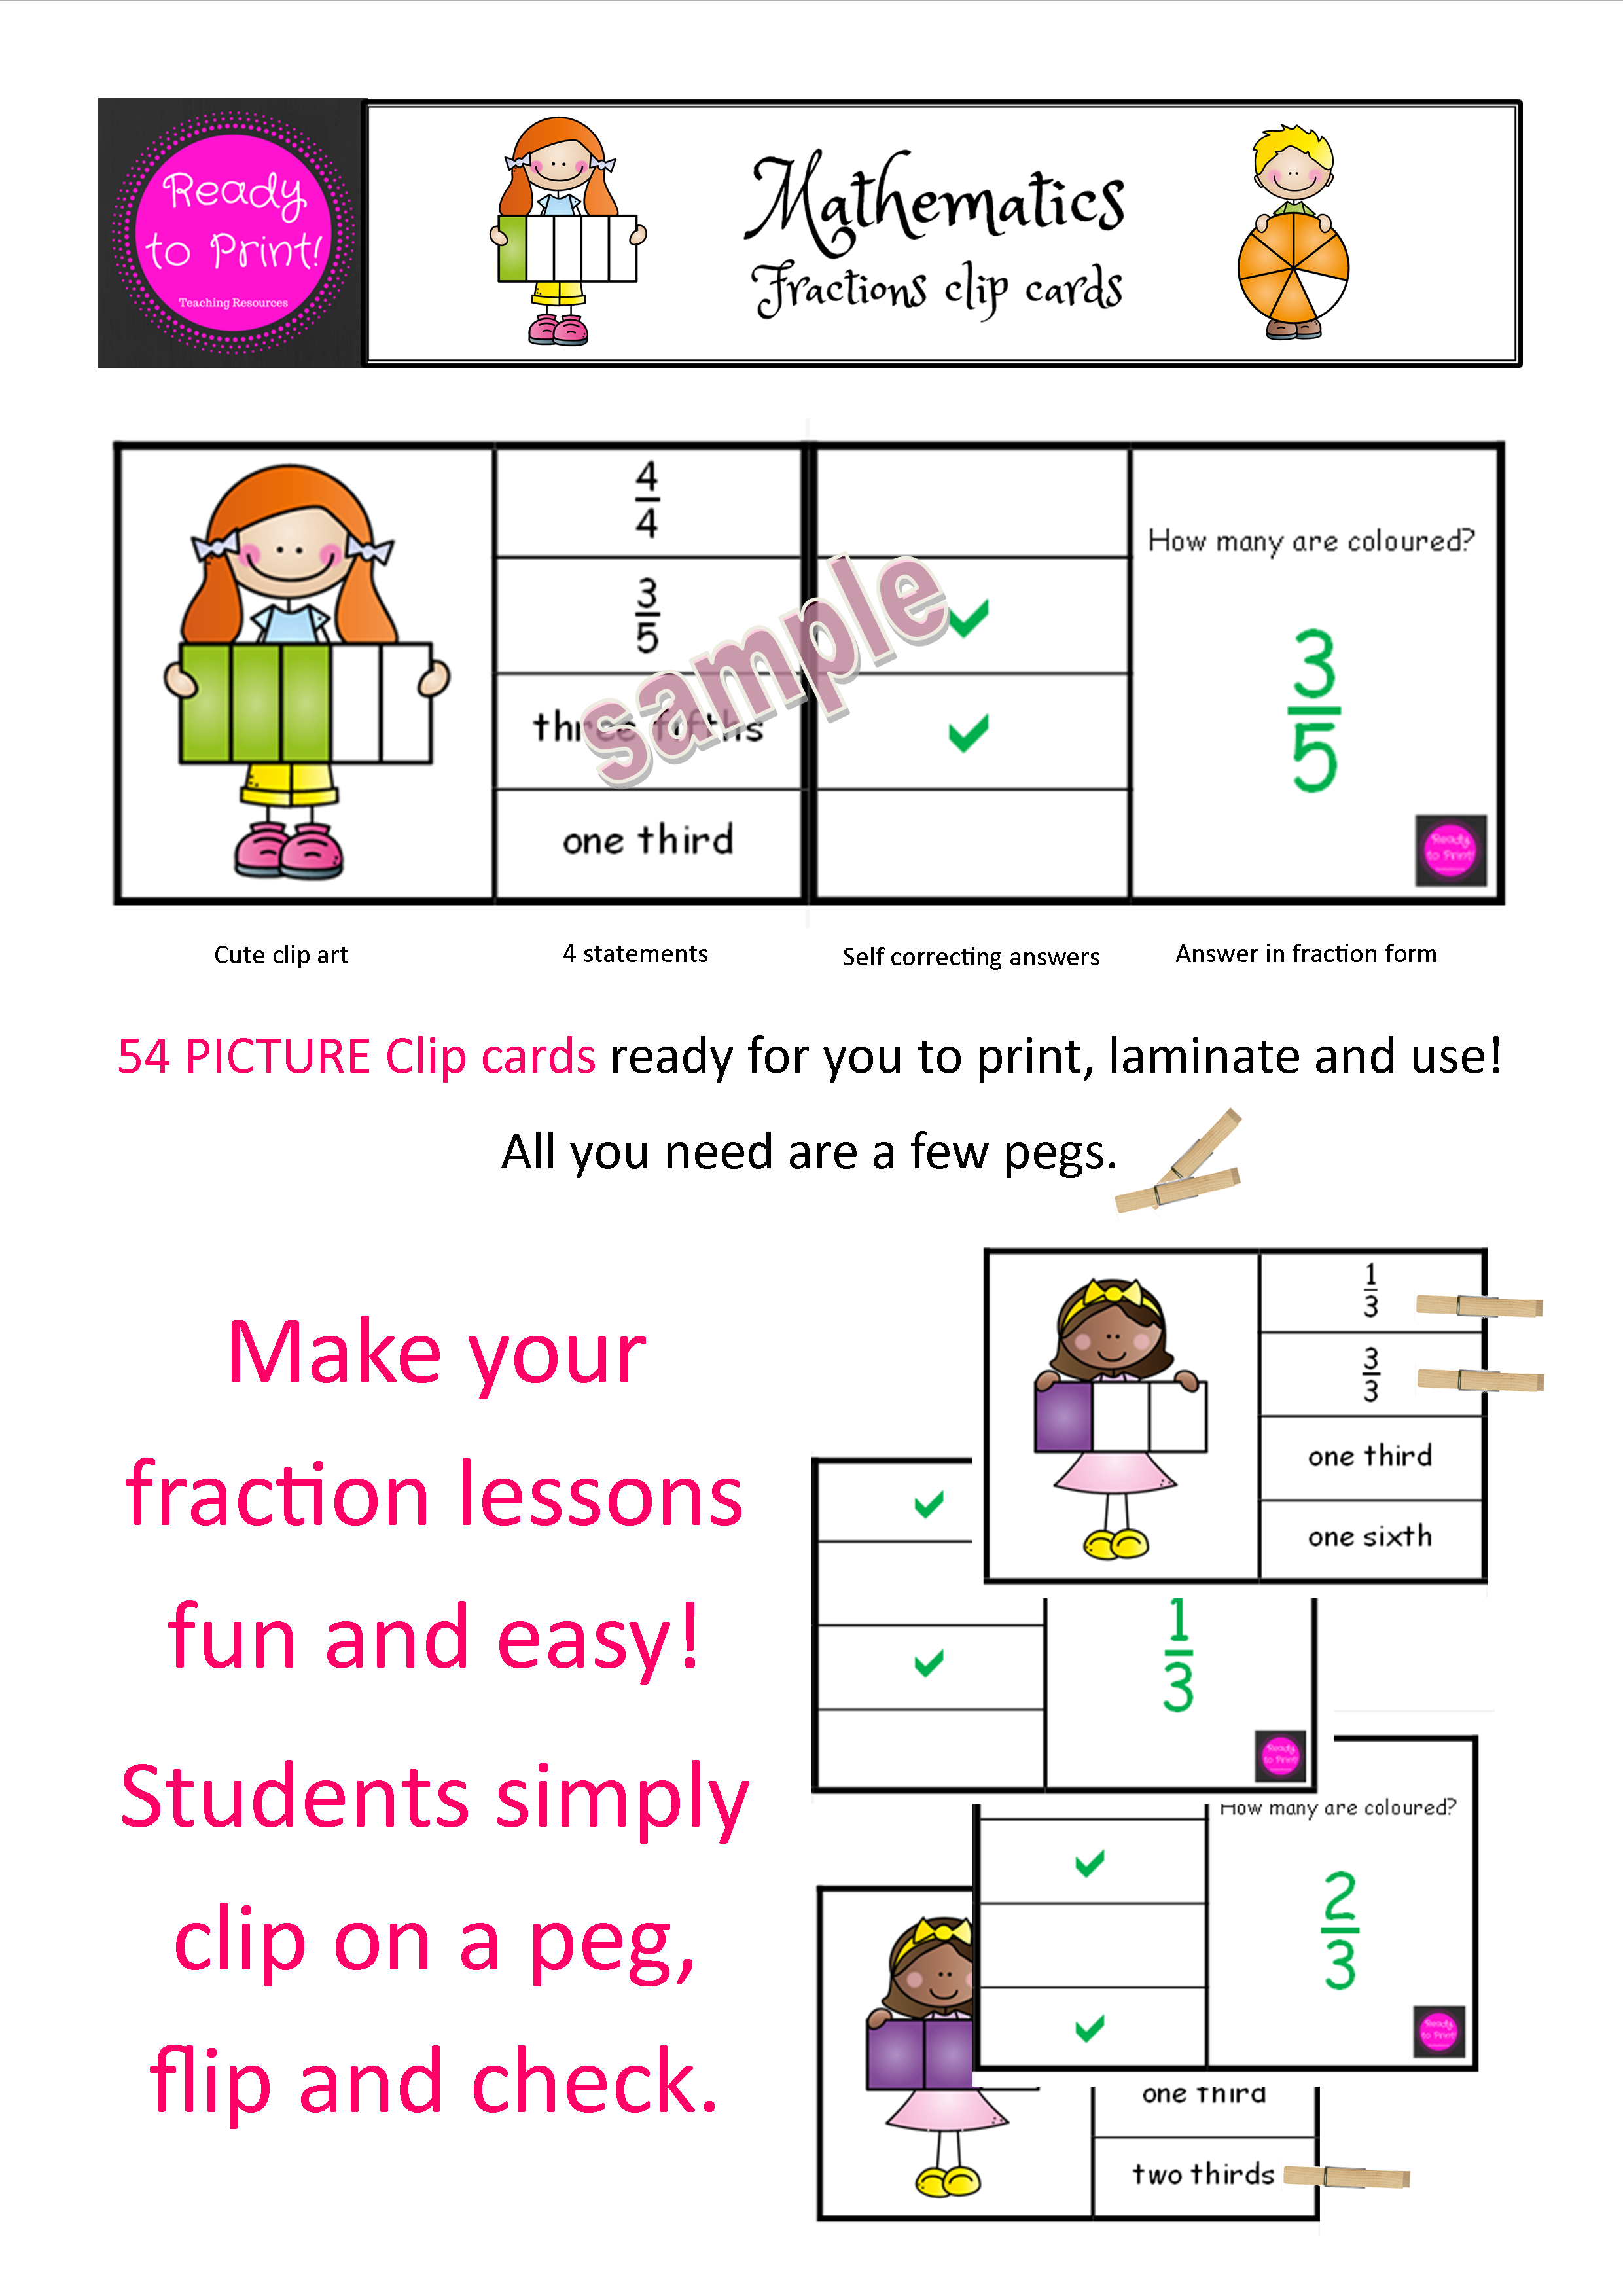 Fractions Clip Cards Shapes Designed By Teachers Clip Cards Fraction Lessons Teaching Essentials [ 3508 x 2480 Pixel ]